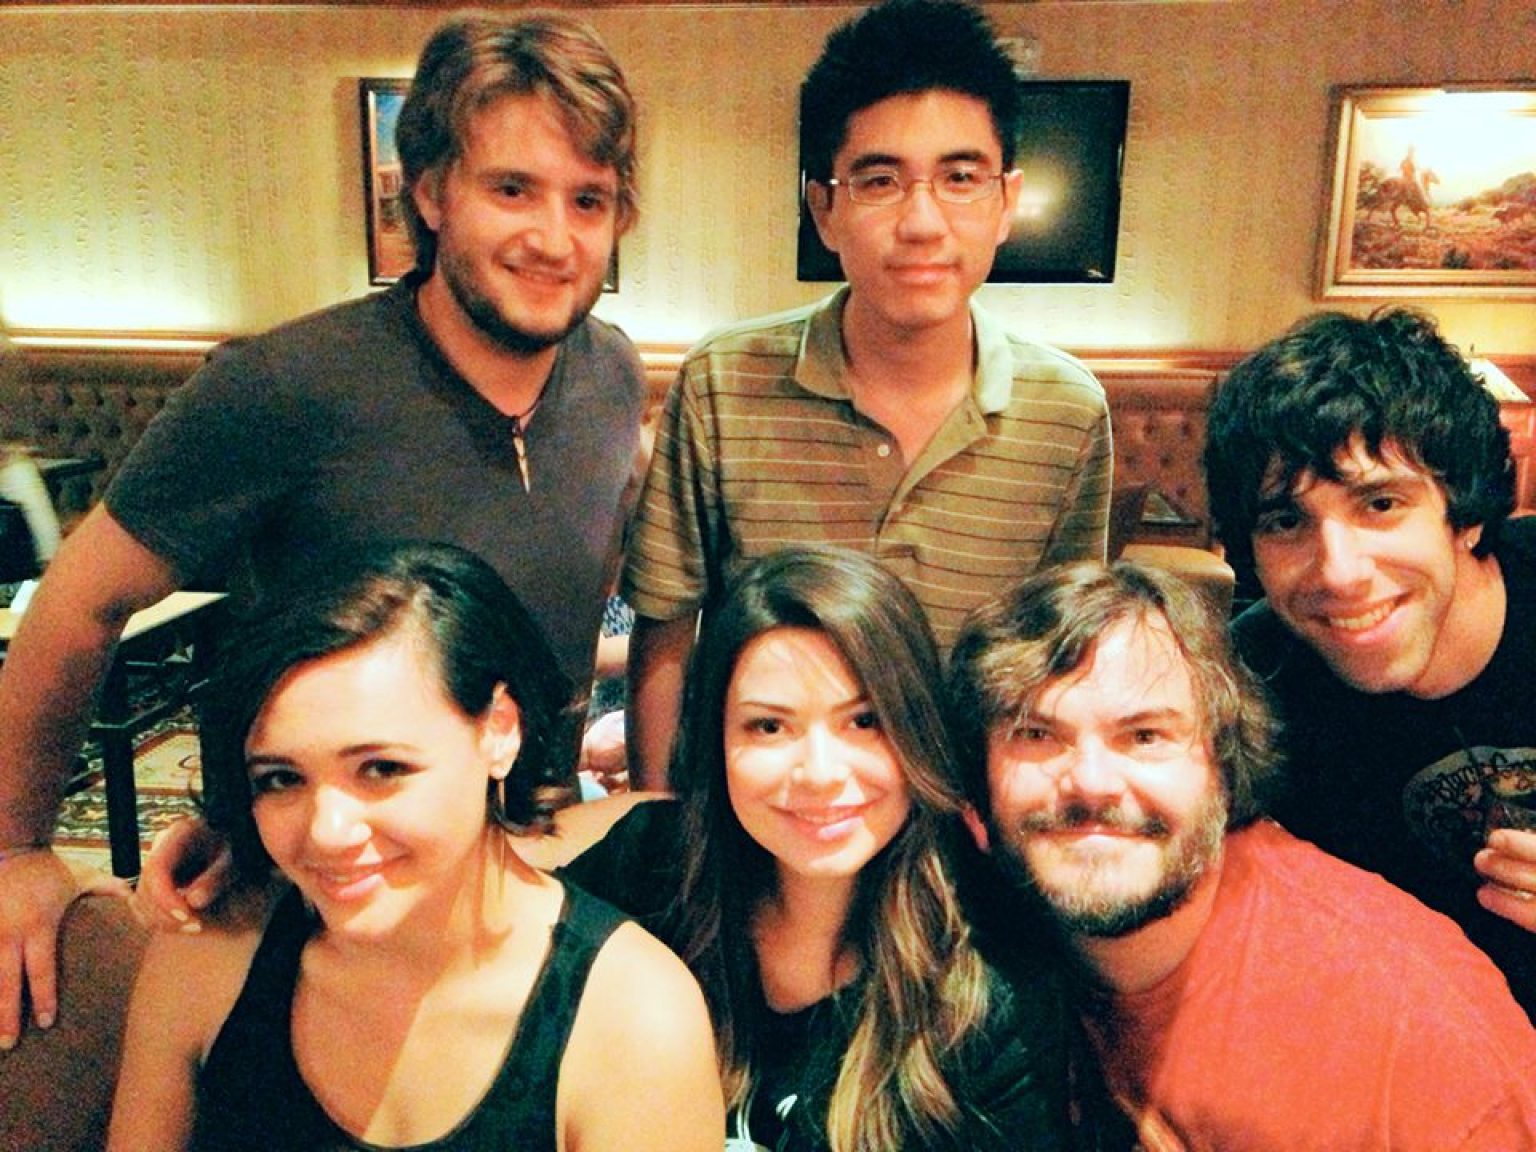 school of rock reunion brings jack black miranda cosgrove richard linklater and more together 10 years later huffpost